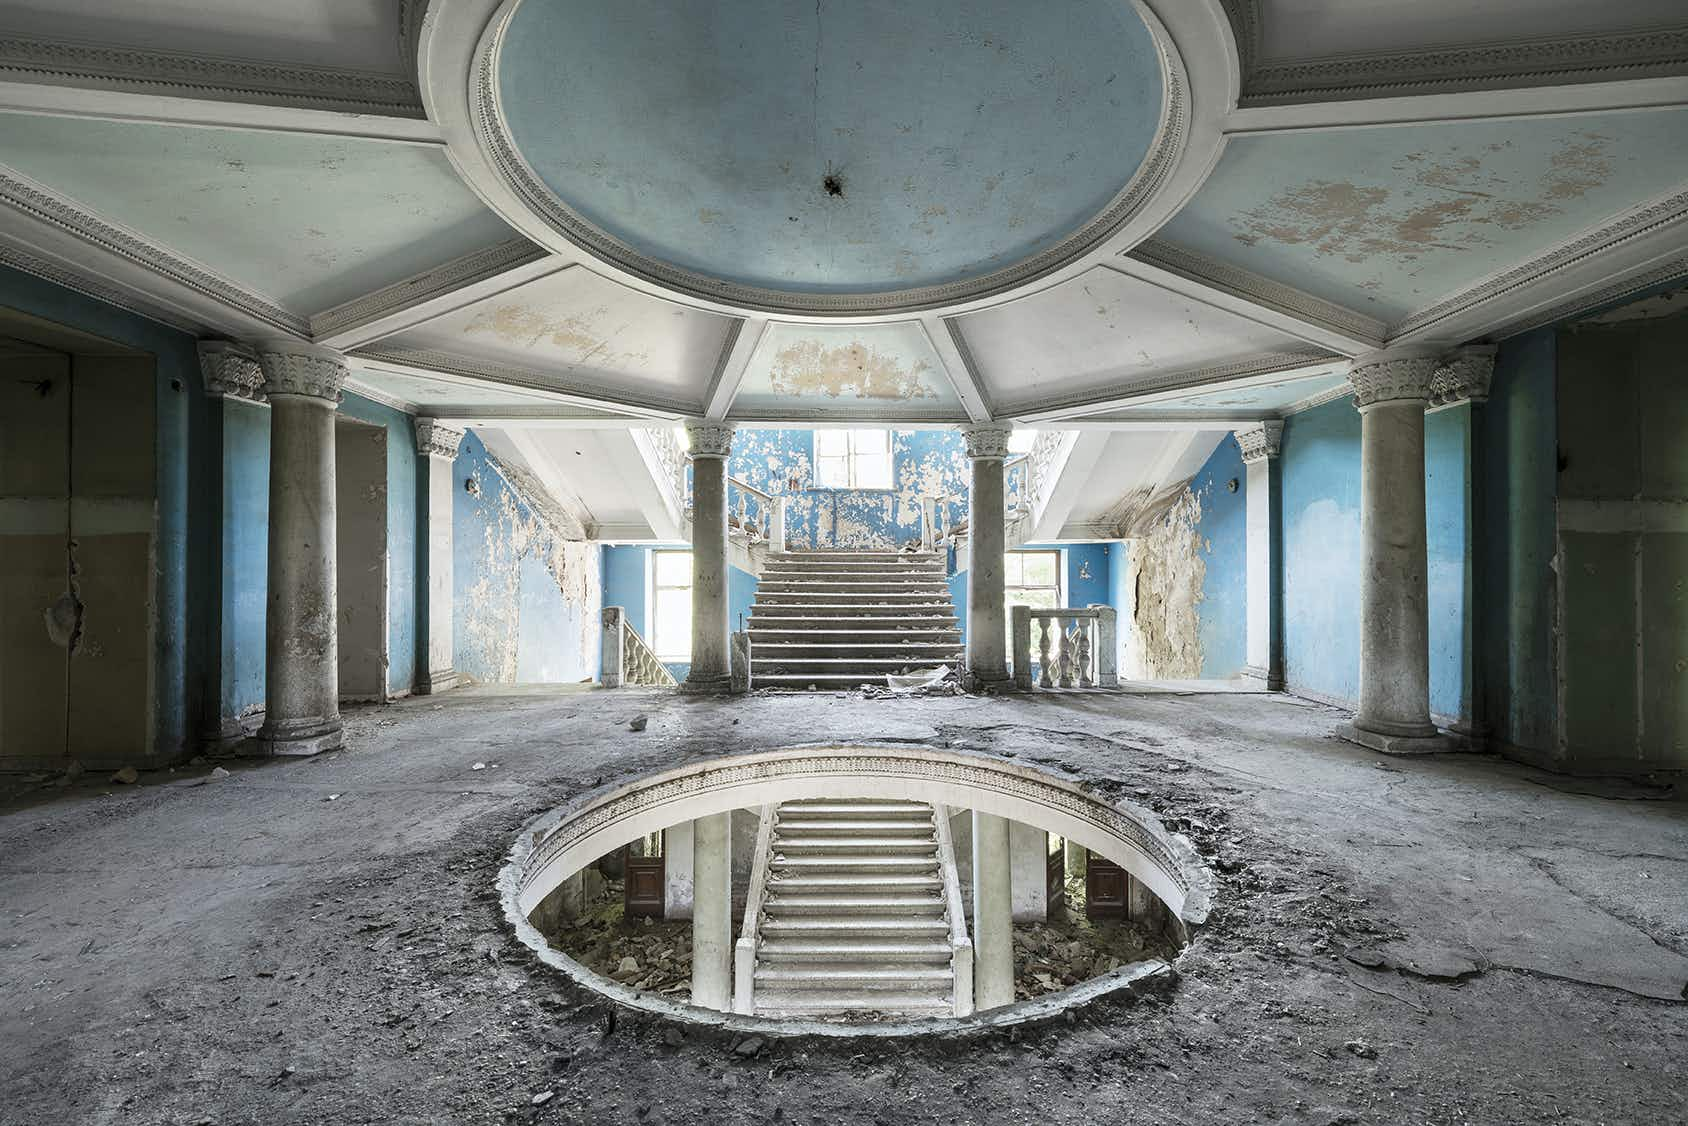 Take a look inside the forgotten Soviet spas along the Russian Riviera